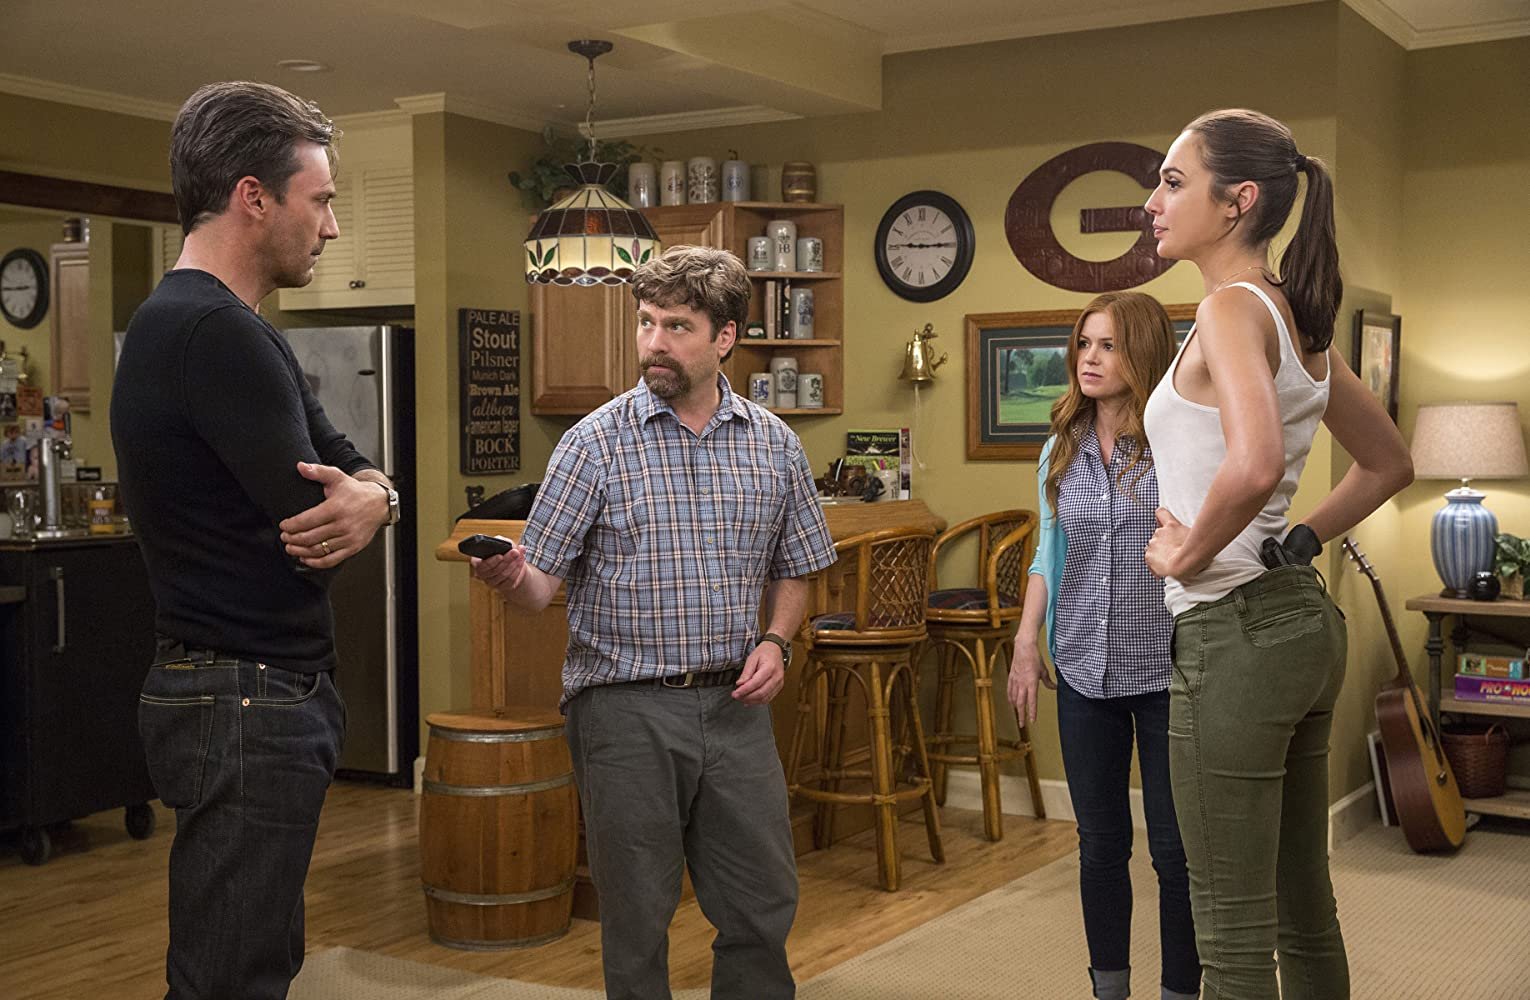 Isla Fisher, Zach Galifianakis, Jon Hamm, and Gal Gadot in Keeping Up with the Joneses (2016)